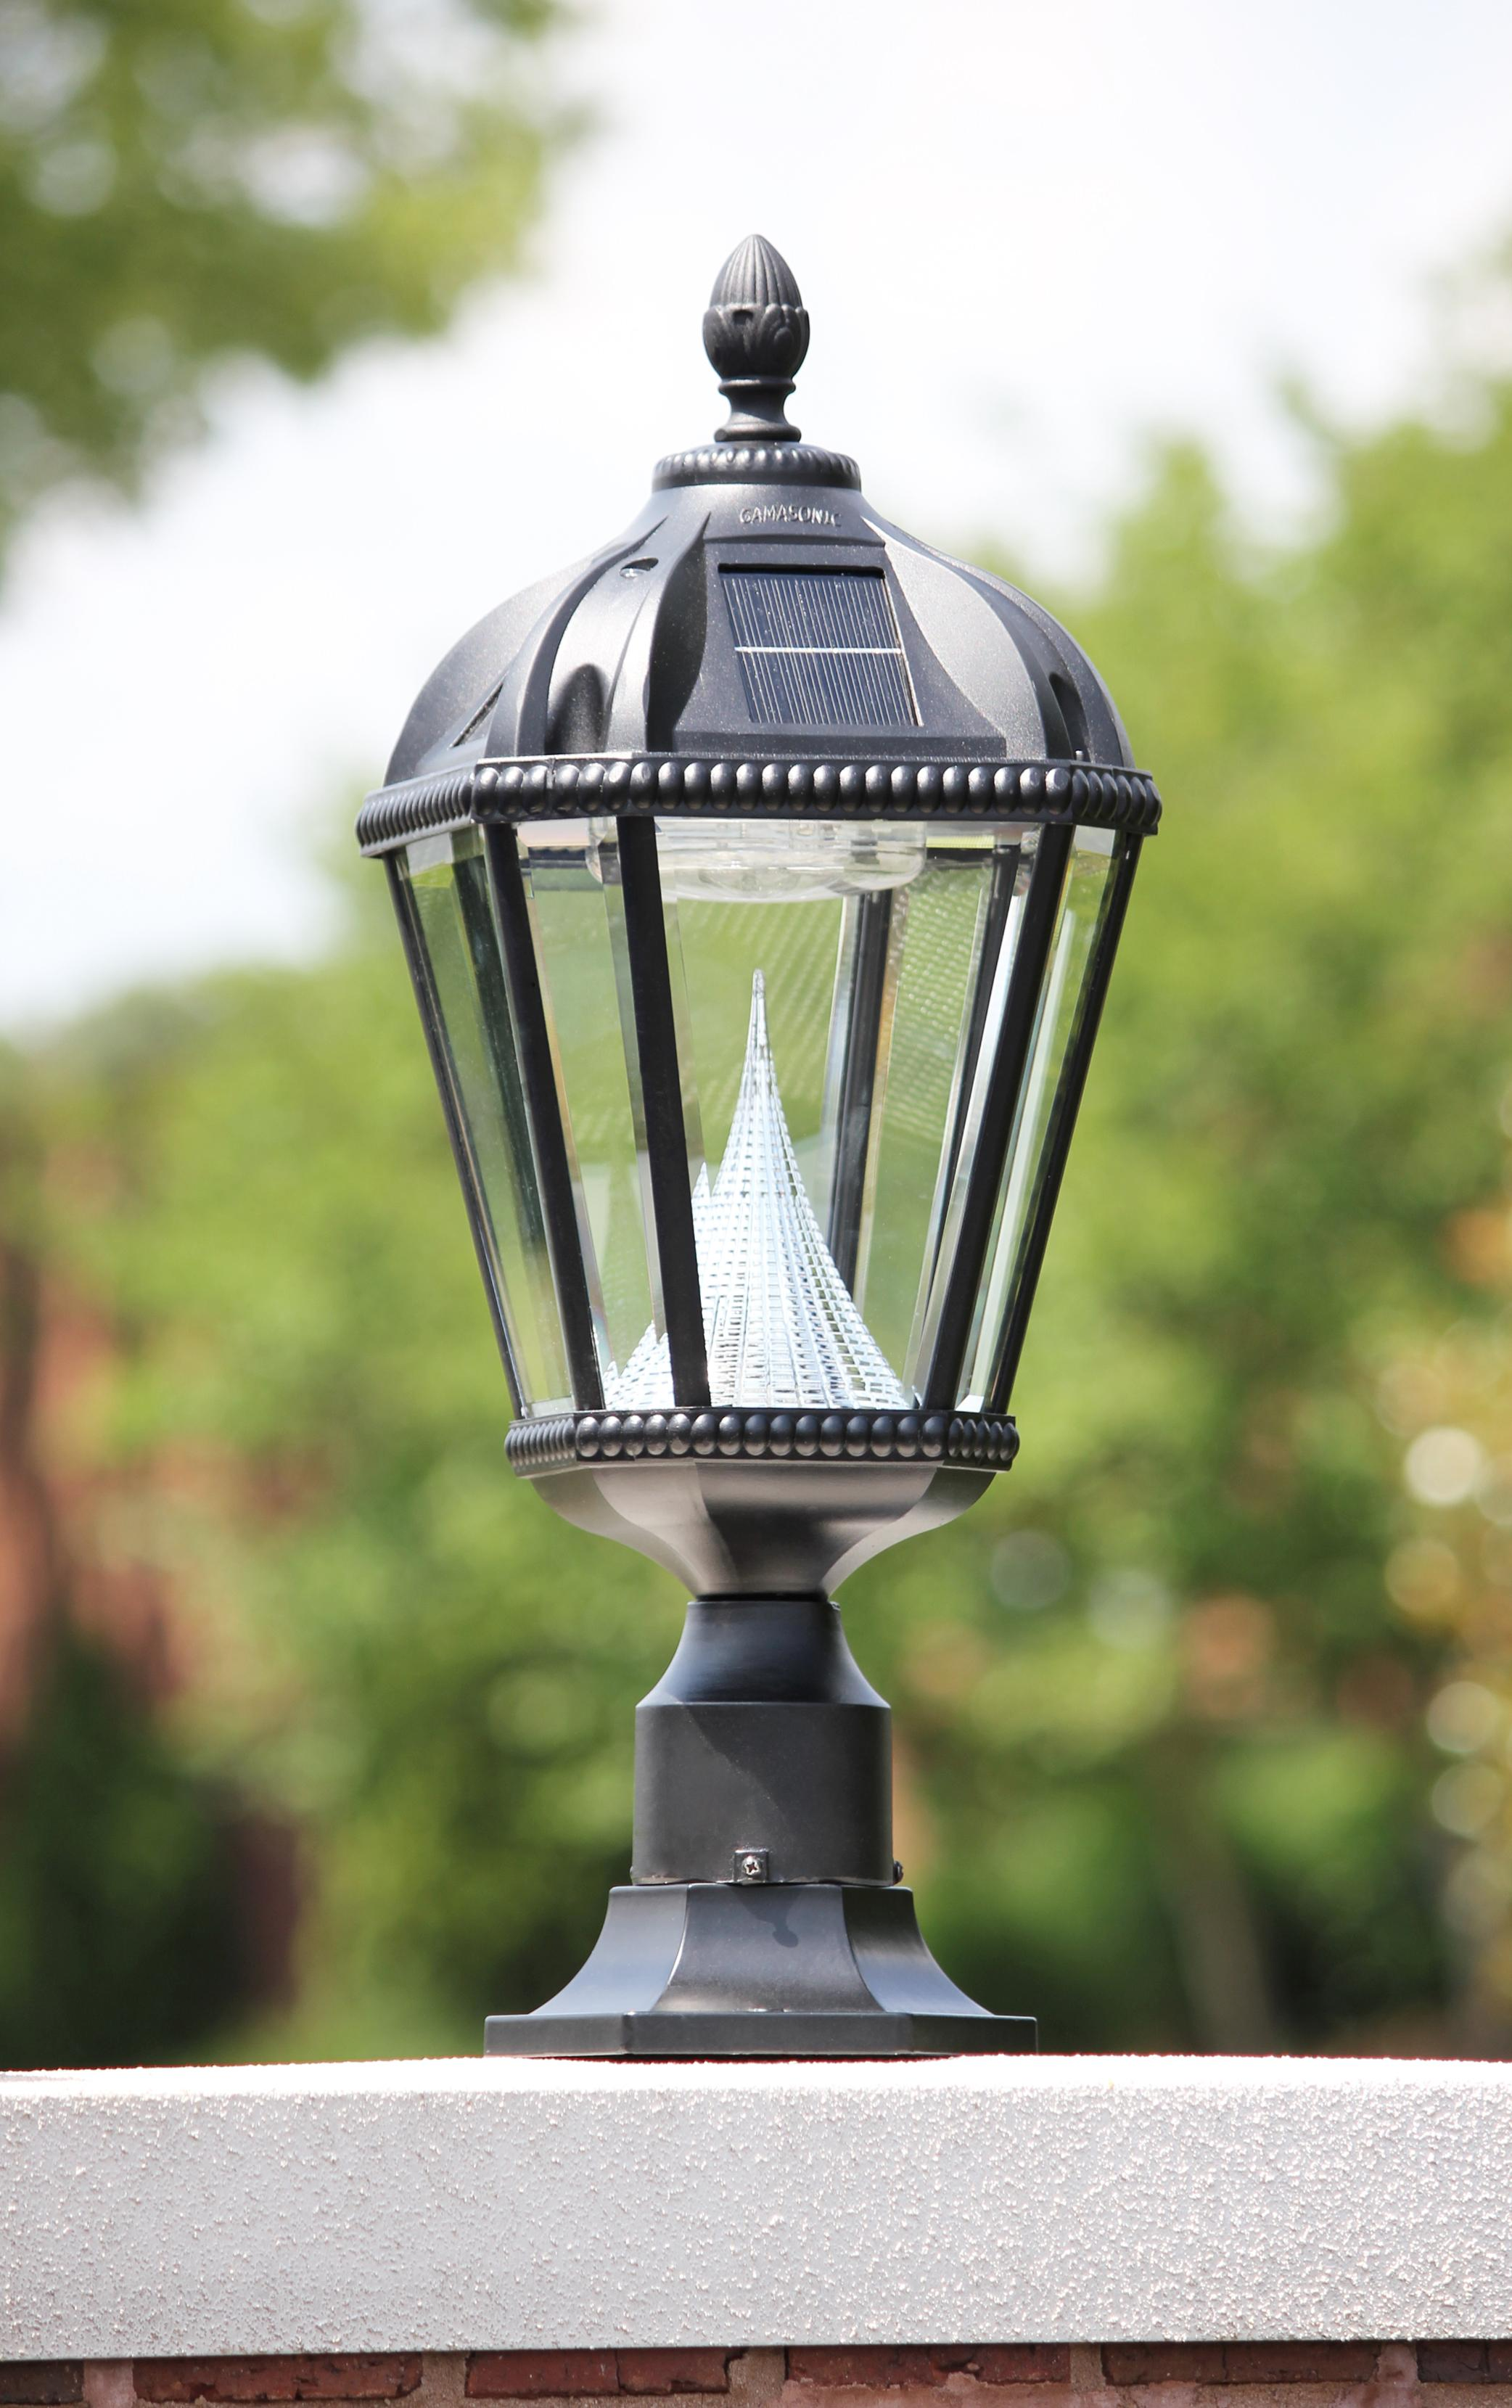 gama sonic royal solar outdoor led light Outdoor Solar Lights For Sale id=56780